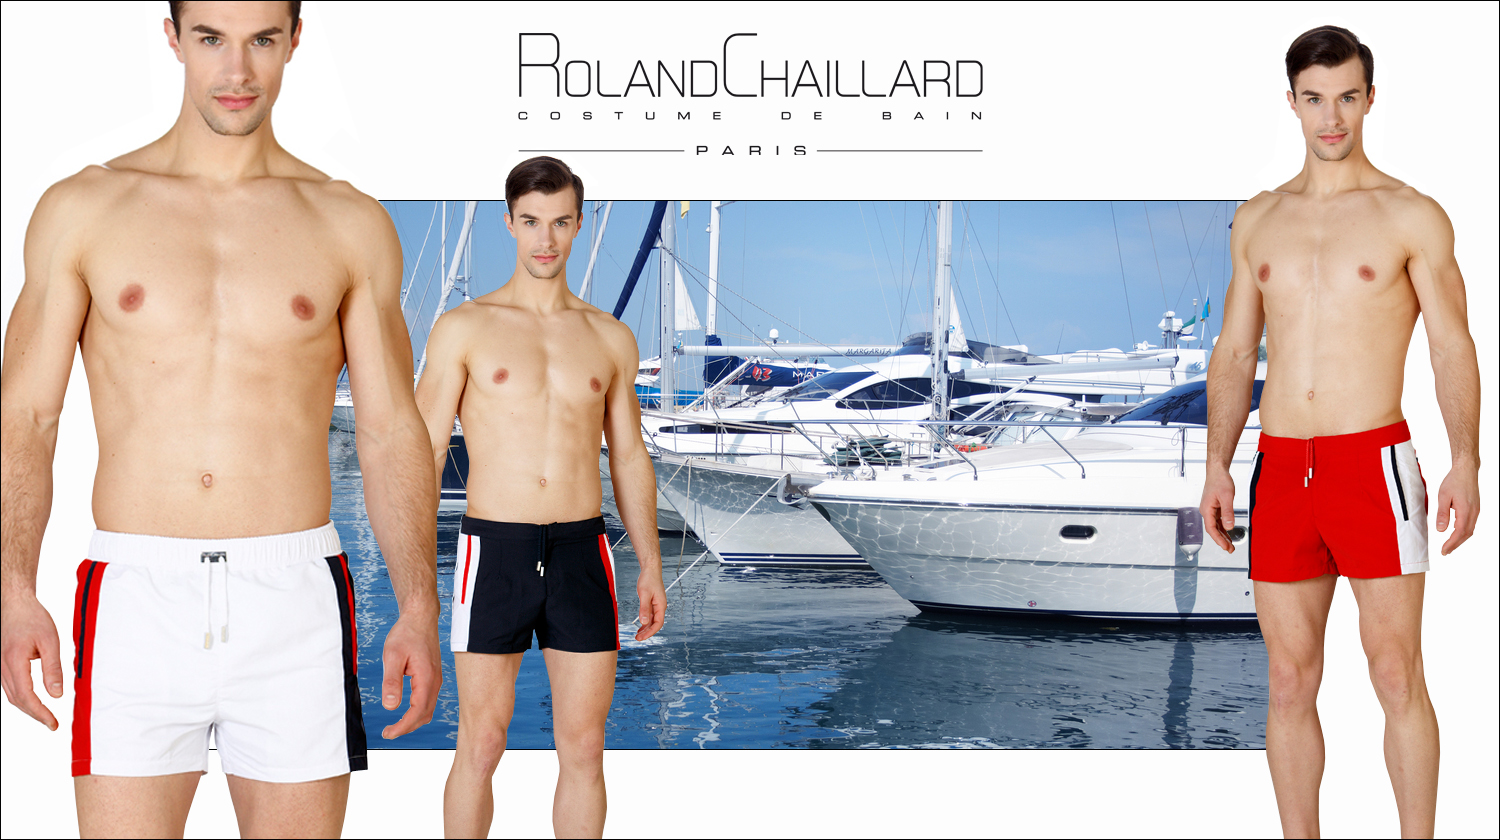 The new collection of Roland Chaillard, costume de bain available at Royal Palm Mauritius